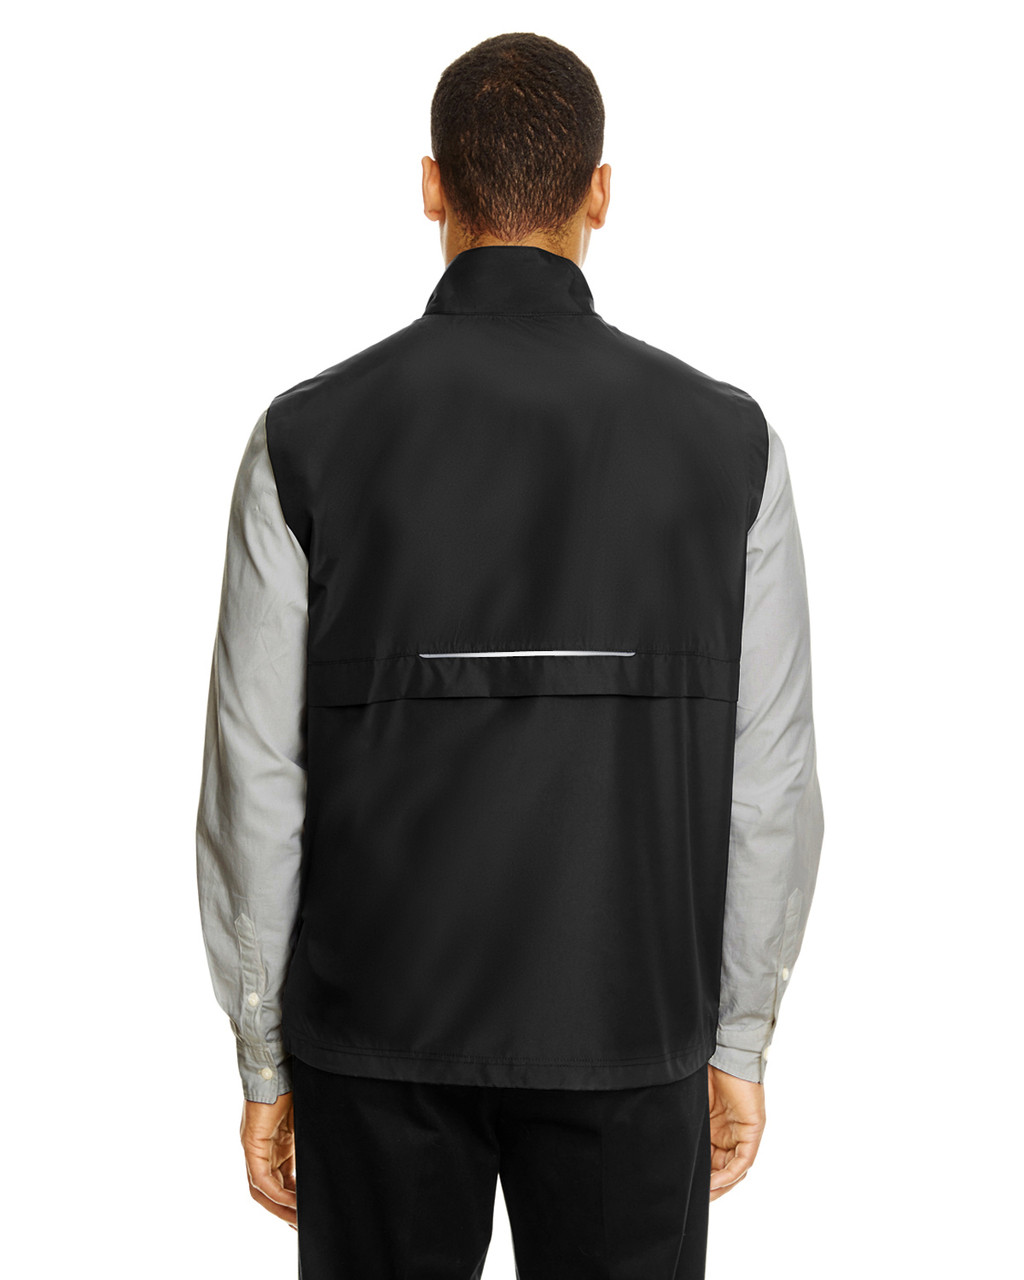 Black - CE703 Ash City - Core 365 Men's Techno Lite Unlined Vest | Blankclothing.ca